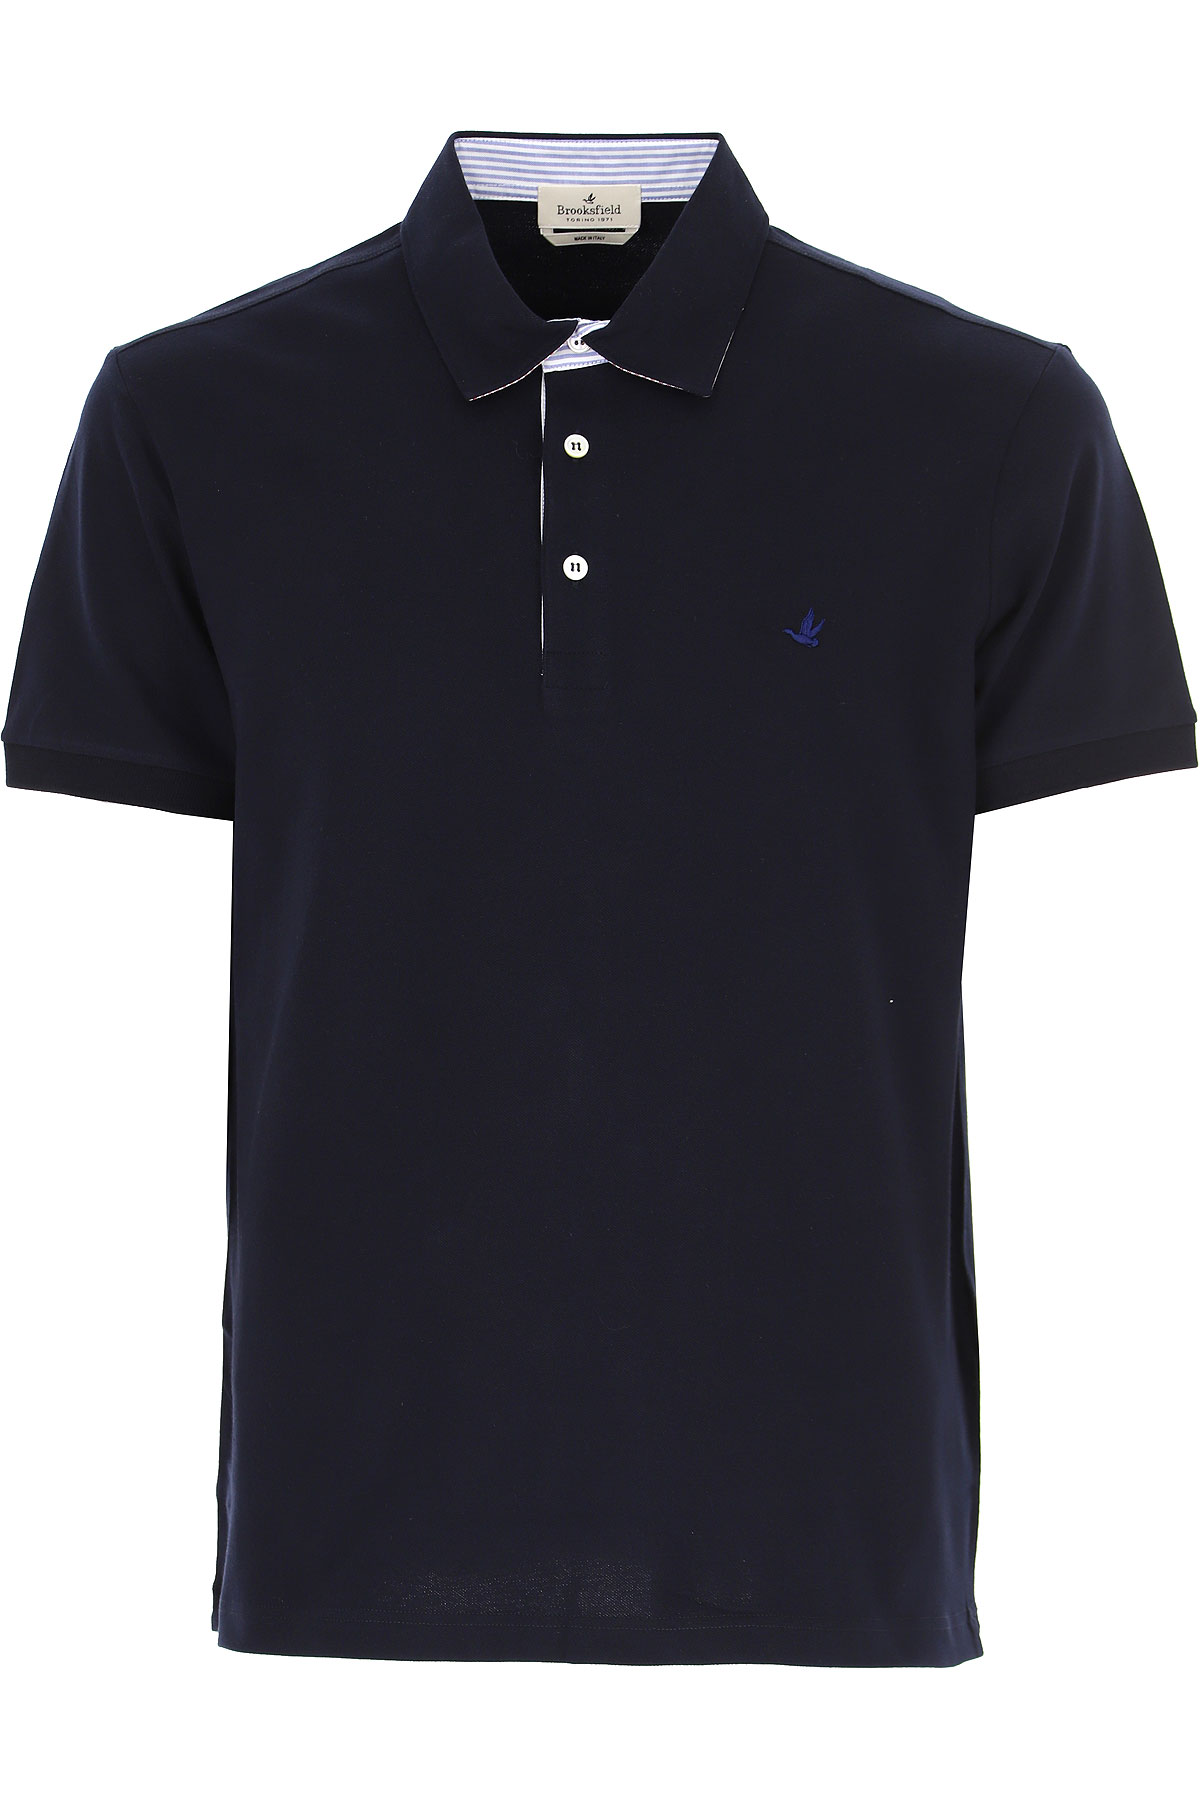 Brooksfield Polo Shirt for Men On Sale, Blue Navy, Cotton, 2019, L M XL XXL XXXL